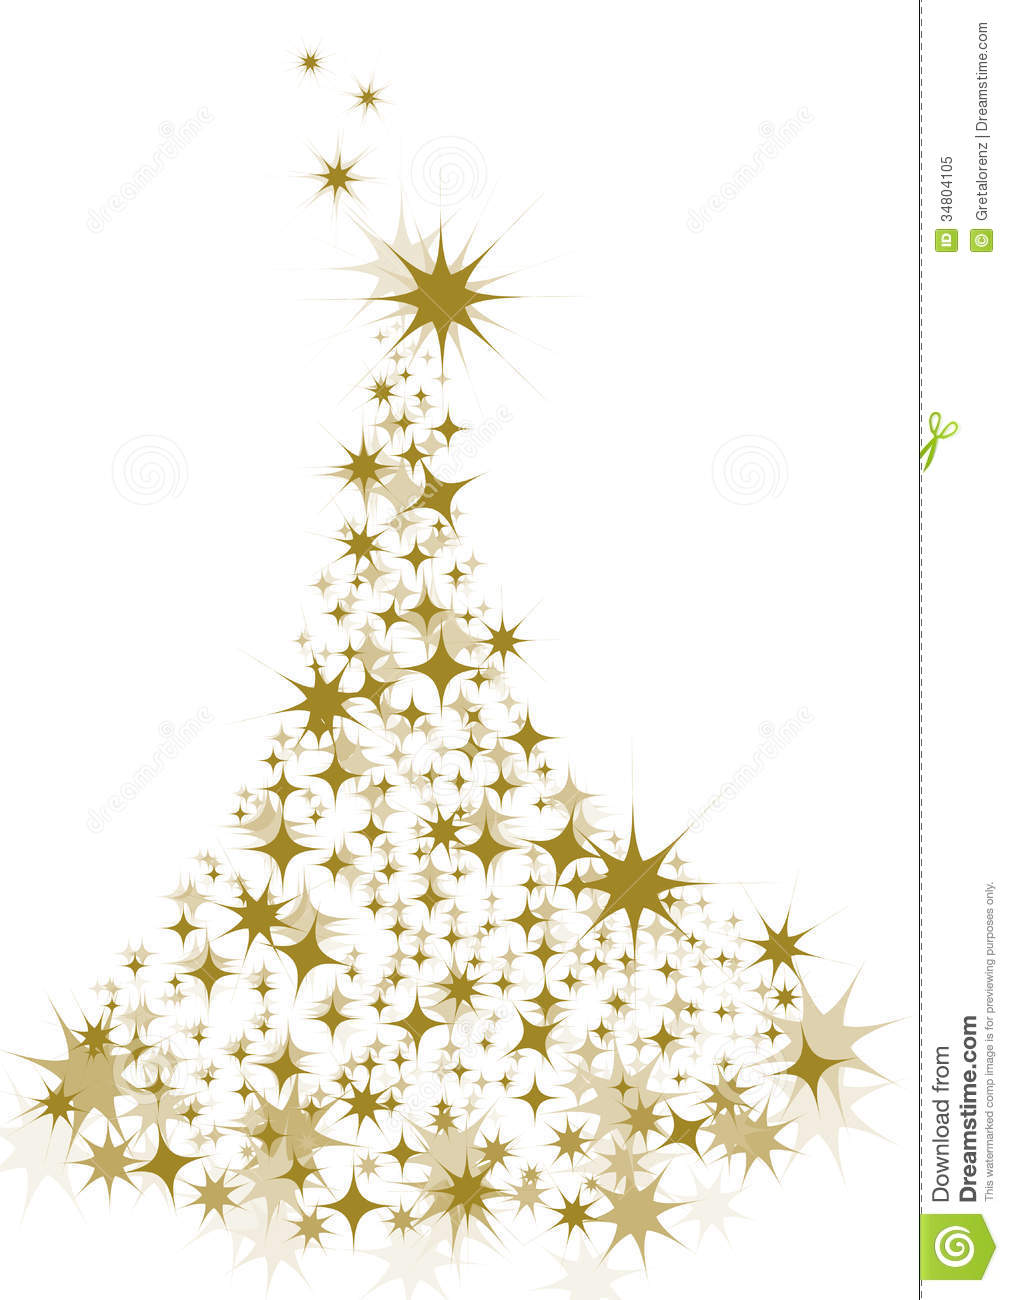 Gold star christmas tree stock vector illustration of gold 34804105 gold star christmas tree kristyandbryce Images